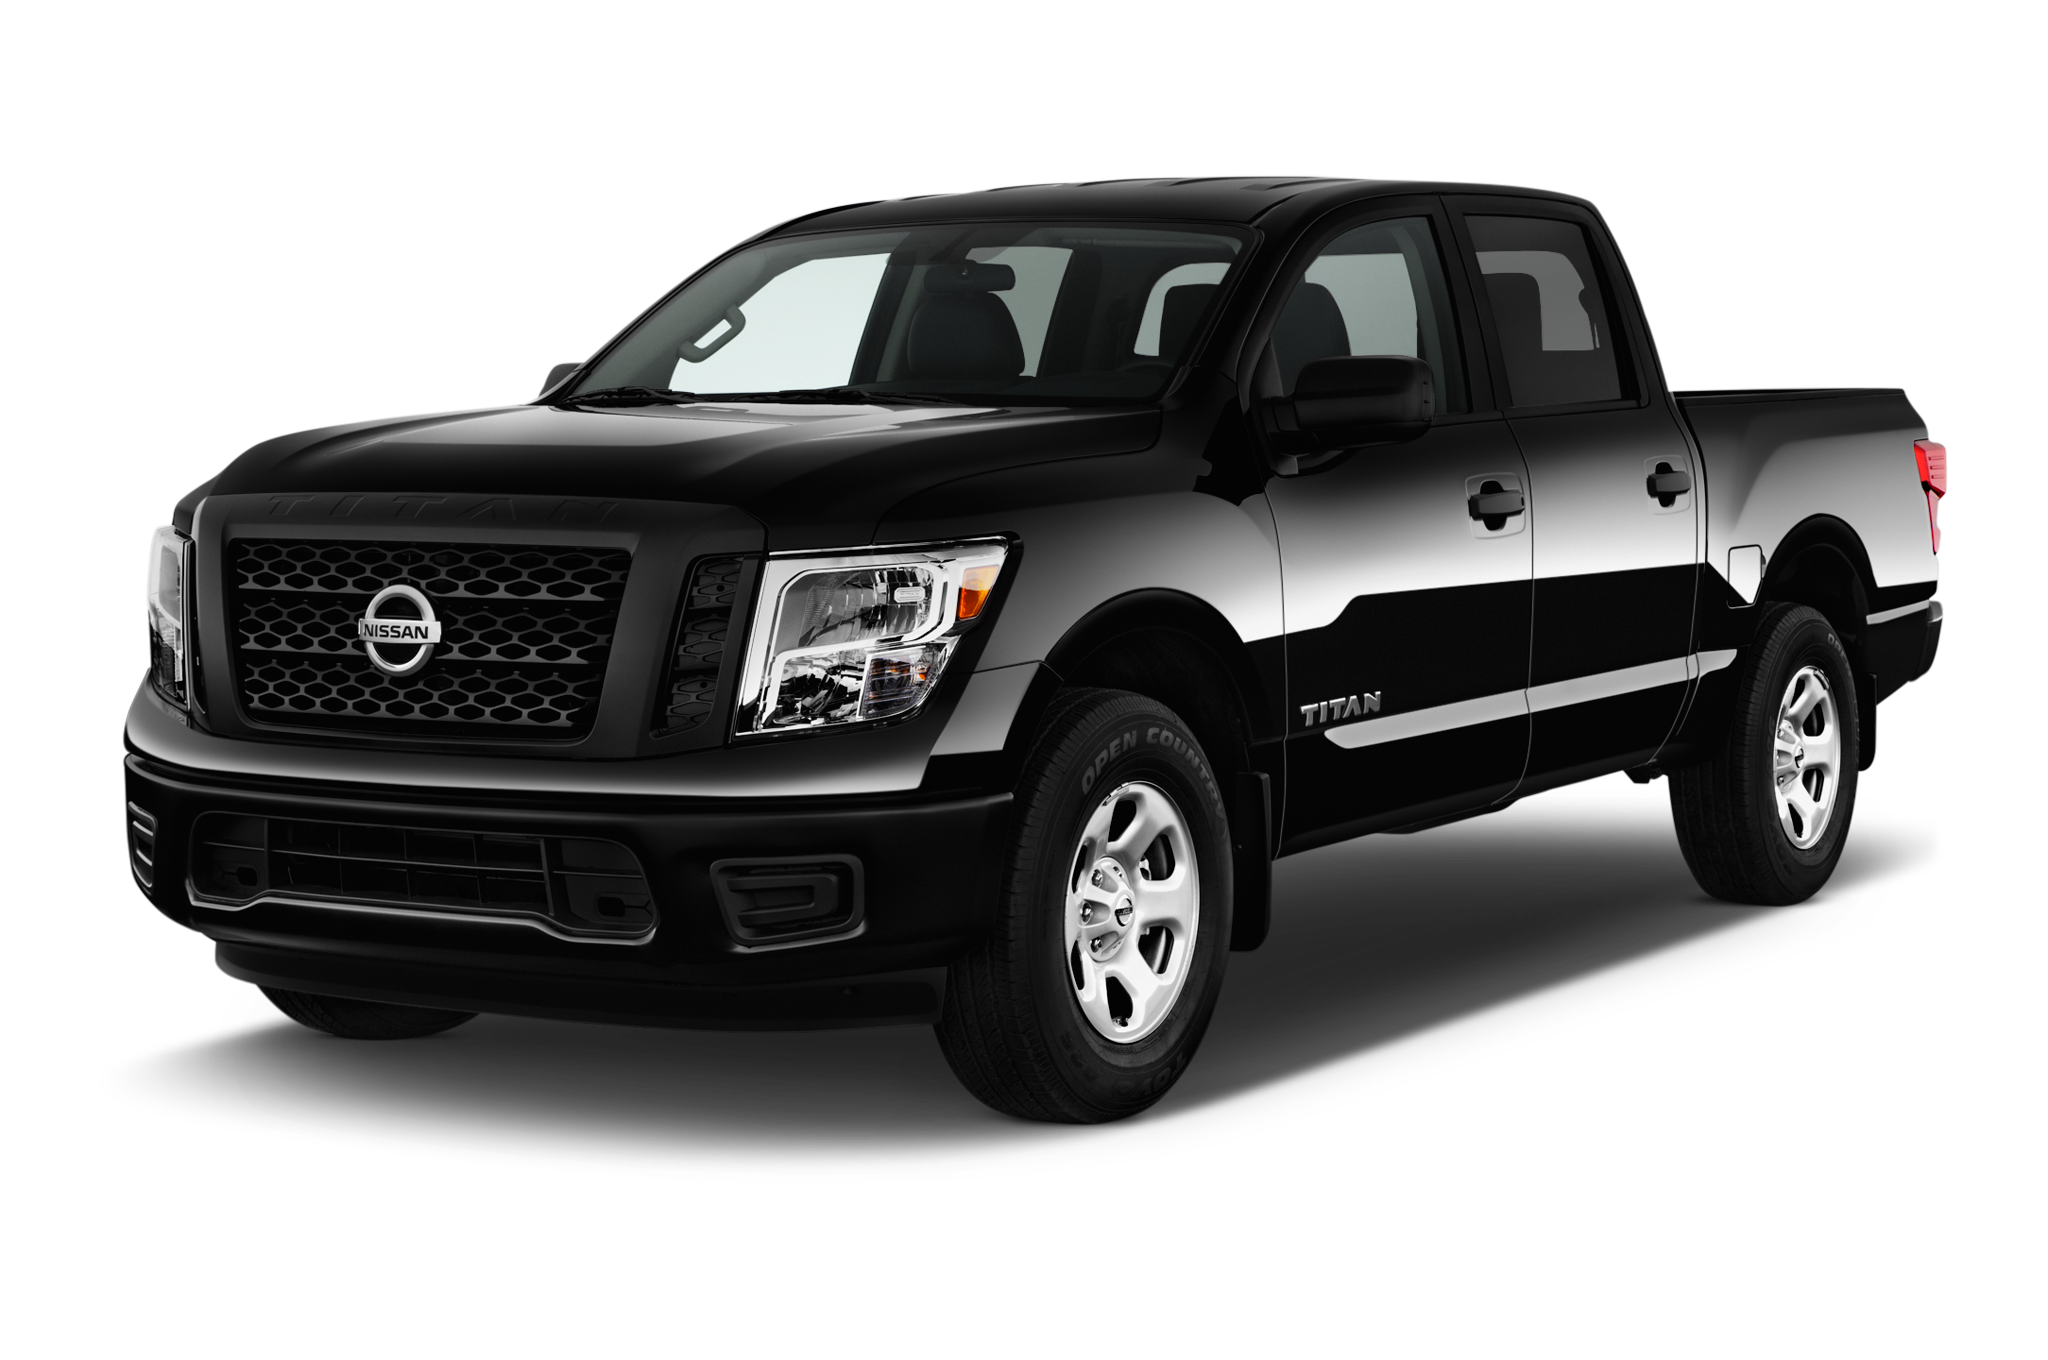 2017 nissan titan s 4x4 swb crew cab specs and features msn autos. Black Bedroom Furniture Sets. Home Design Ideas